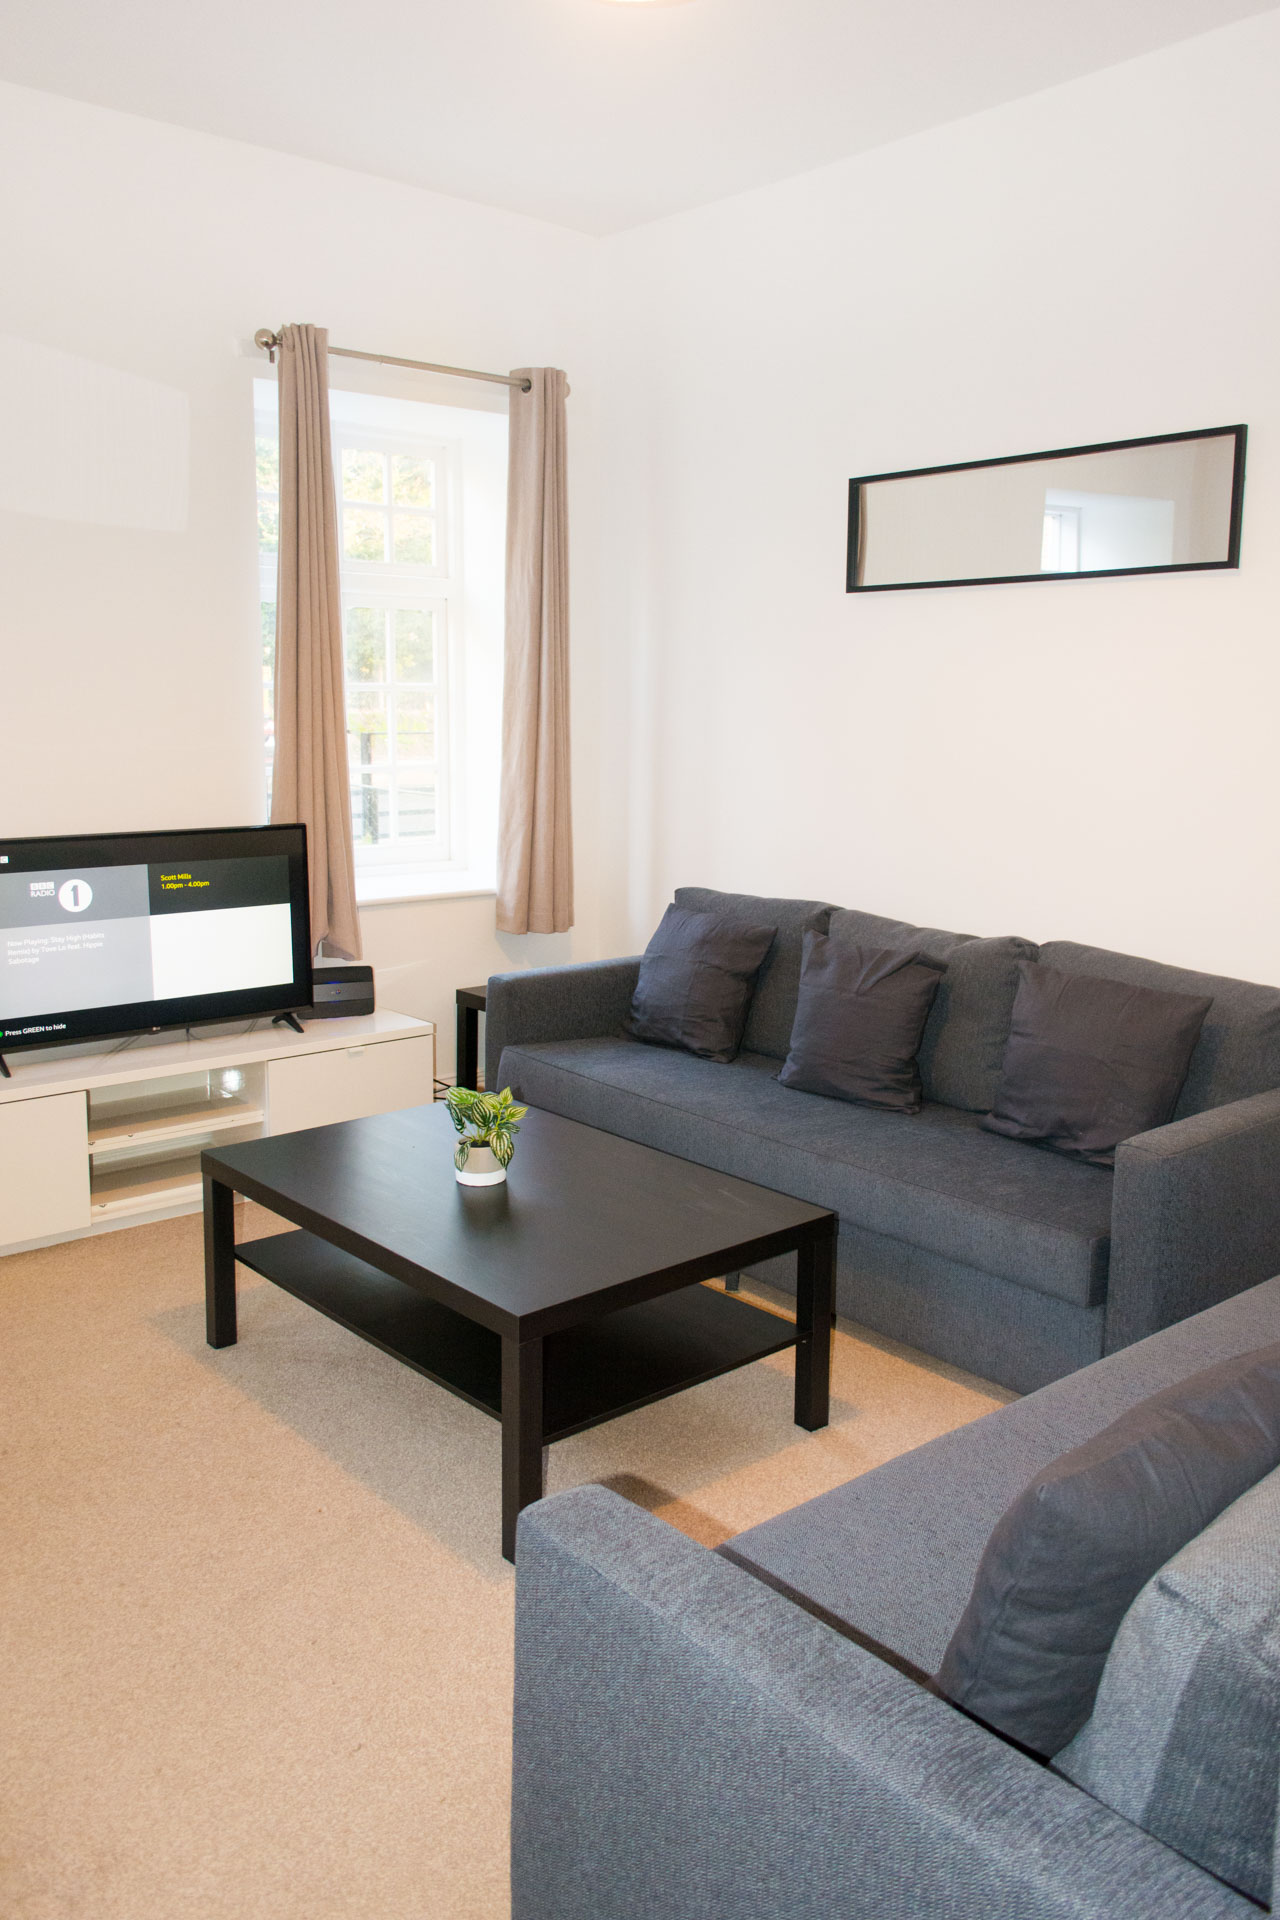 Wide angle shot of grey sofas, black coffee table and living area.